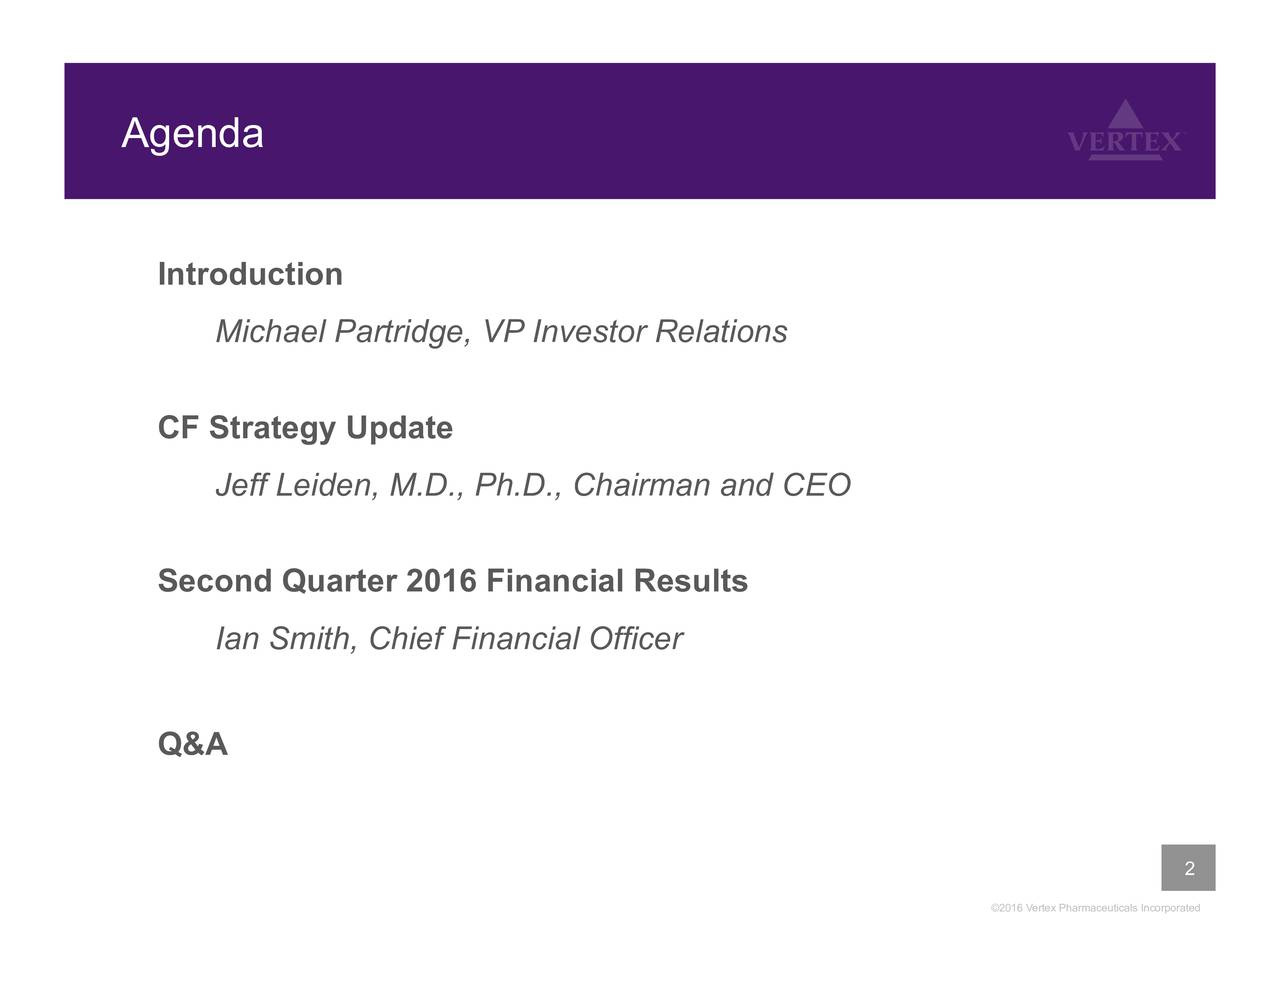 Introduction Michael Partridge, VP Investor Relations CF Strategy Update Jeff Leiden, M.D., Ph.D., Chairman and CEO Second Quarter 2016 Financial Results Ian Smith, Chief Financial Officer Q&A 2 2016 Vertex Pharmaceuticals Incorporated